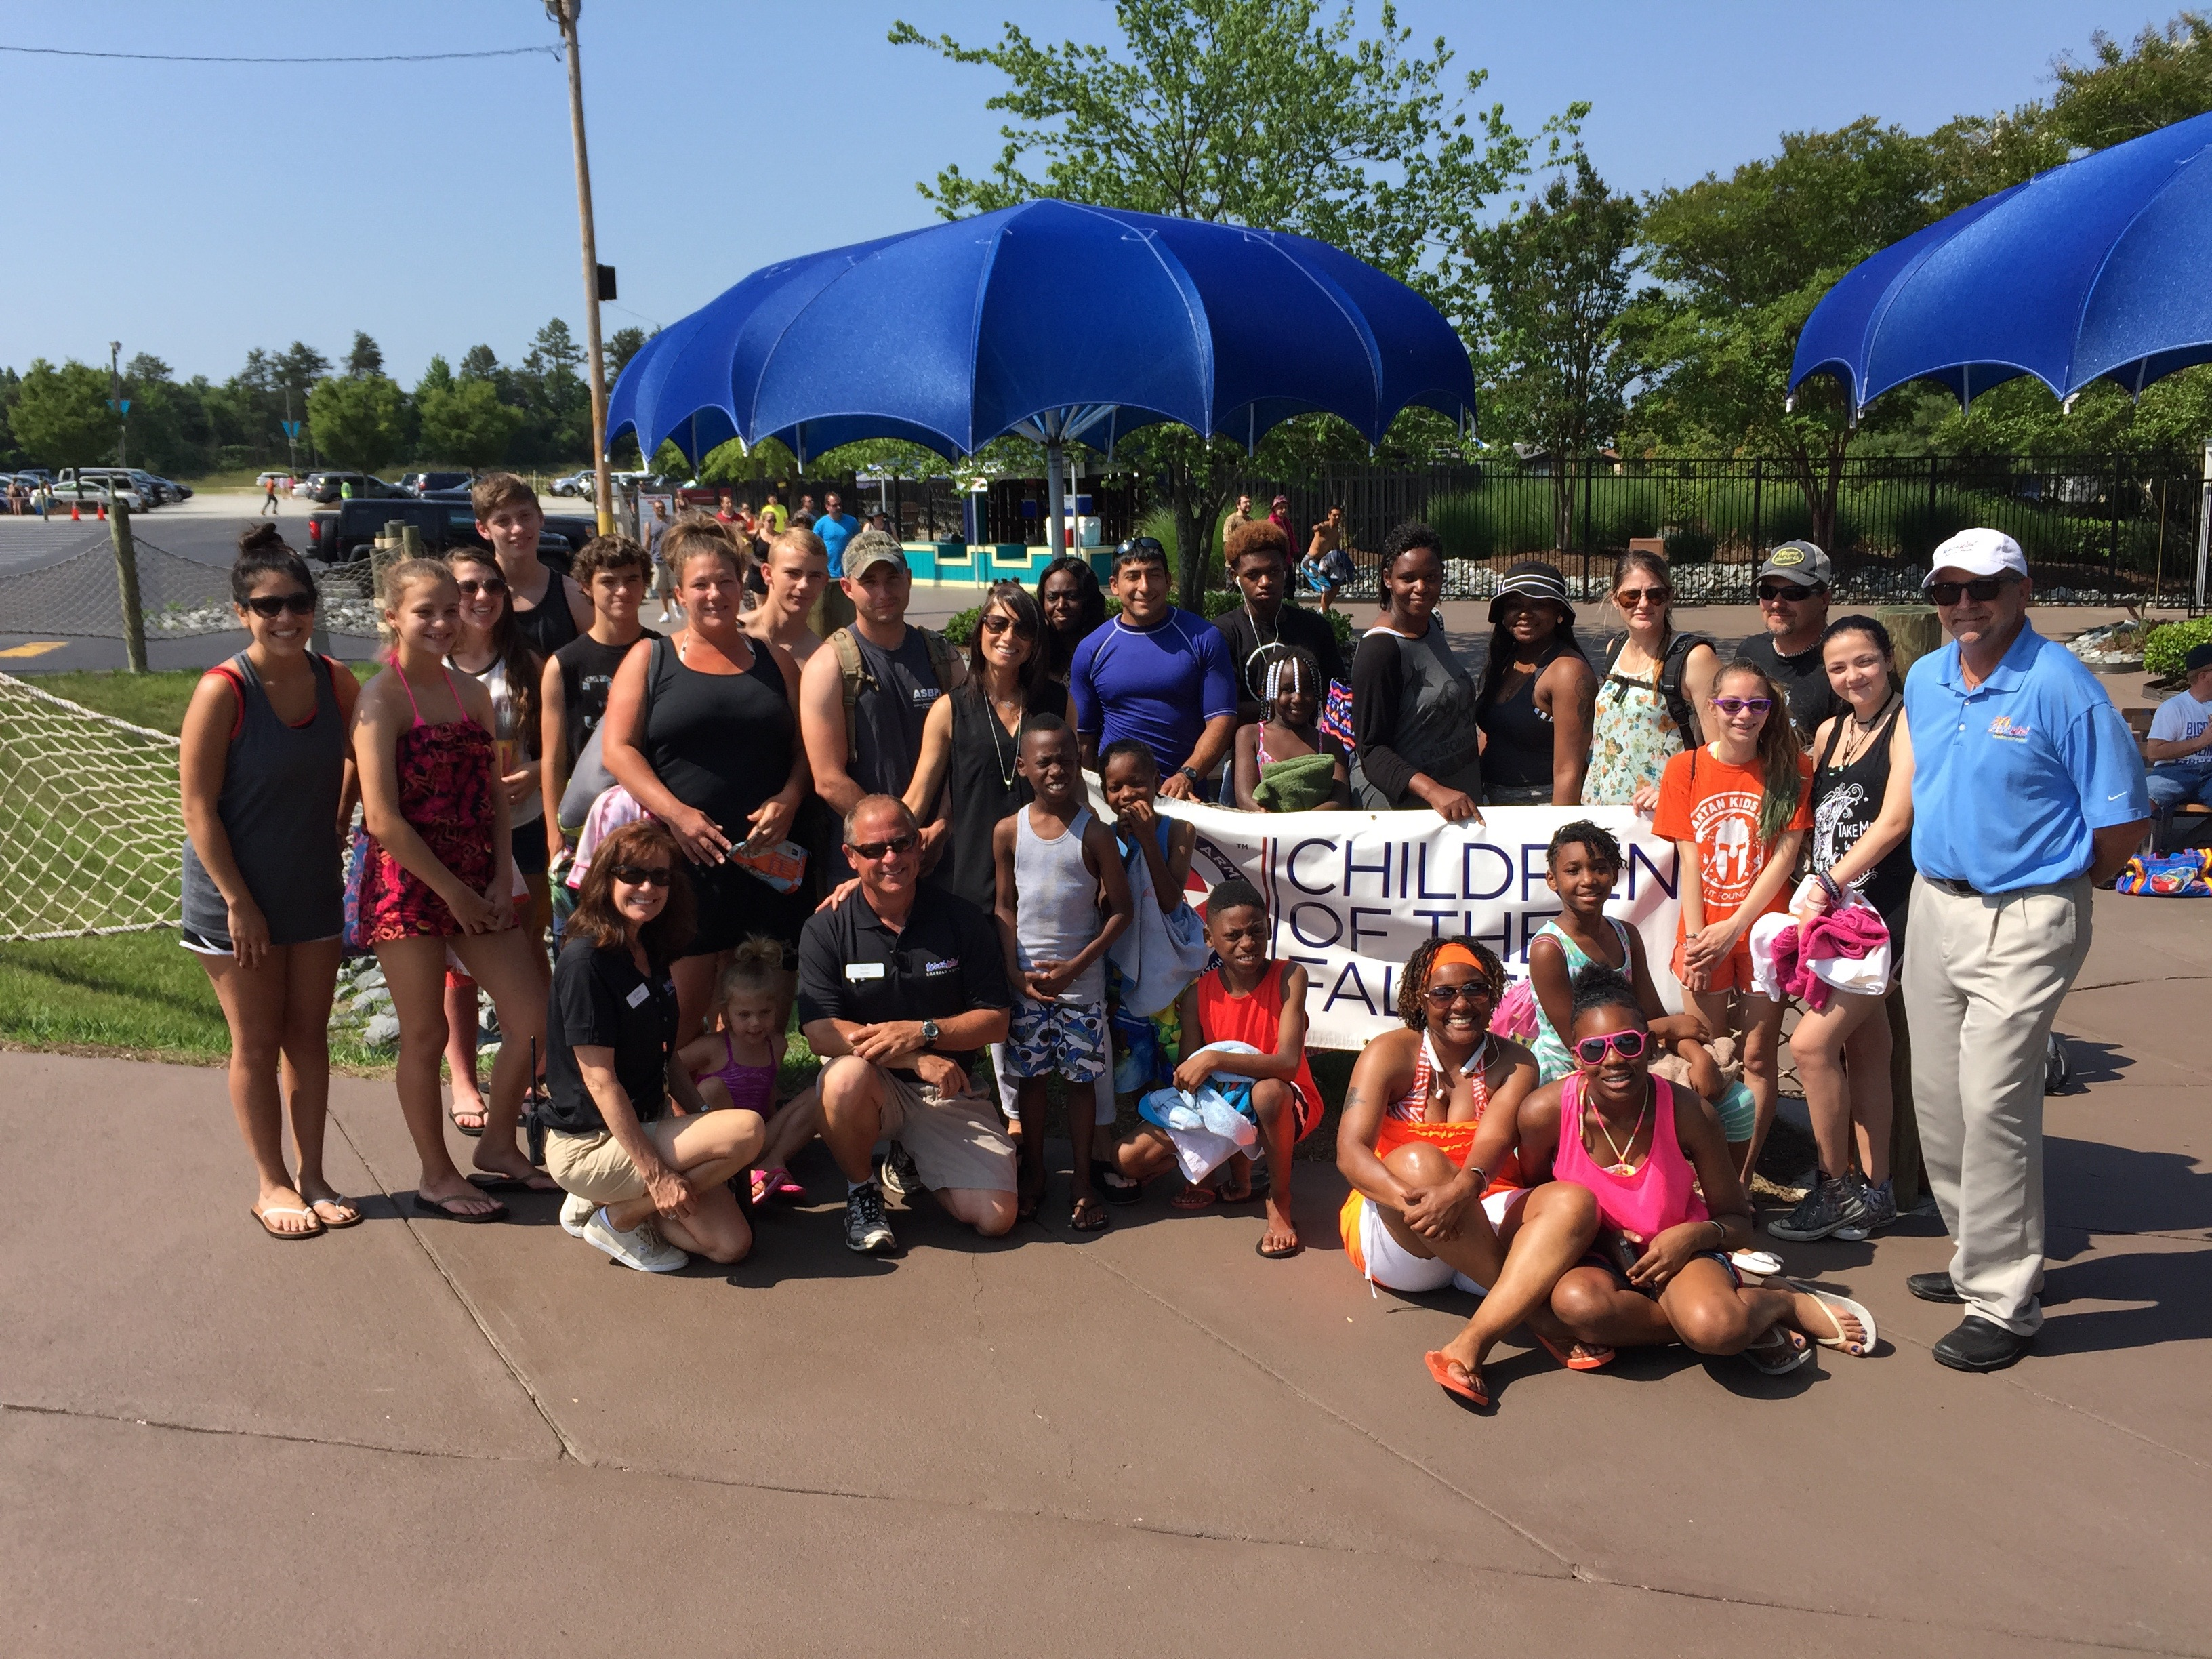 Children Of The Fallen Project Event At Wet N Wild